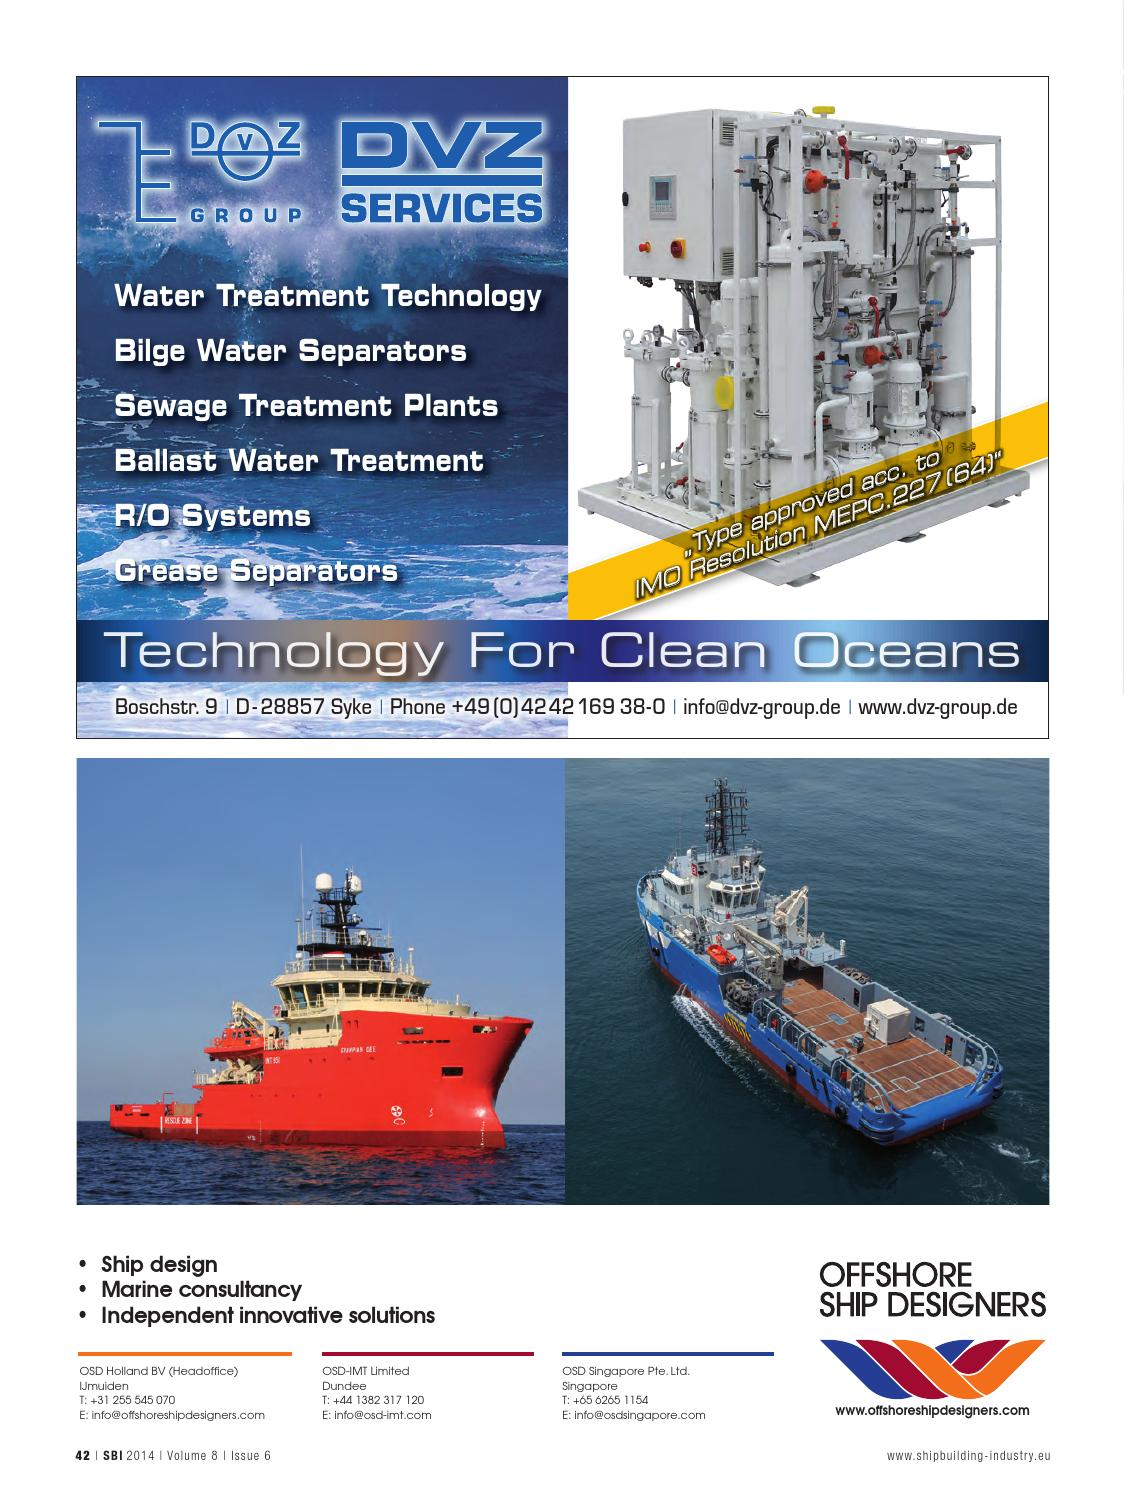 ShipBuilding Industry, Vol 8 No 6 by Yellow & Finch Publishers - issuu